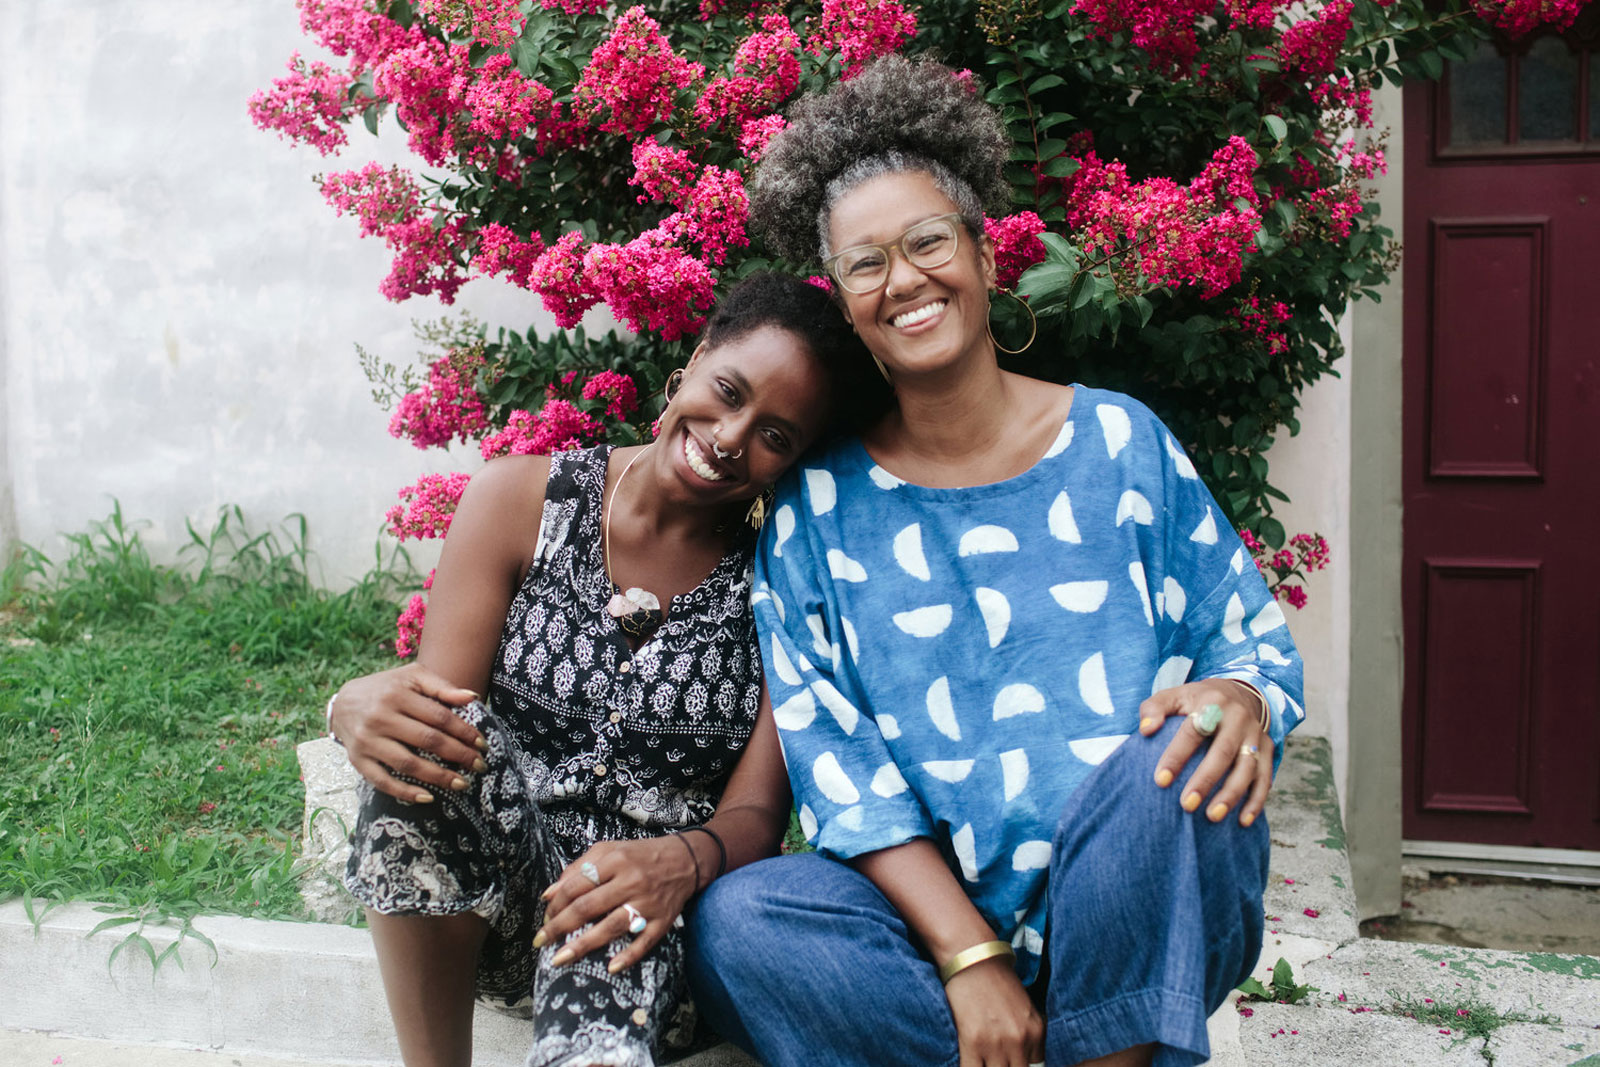 Our Mothers Kitchens Founders Khaliah D. Pitts (r) and Shivon Love. Photo by Adachi Pimental.